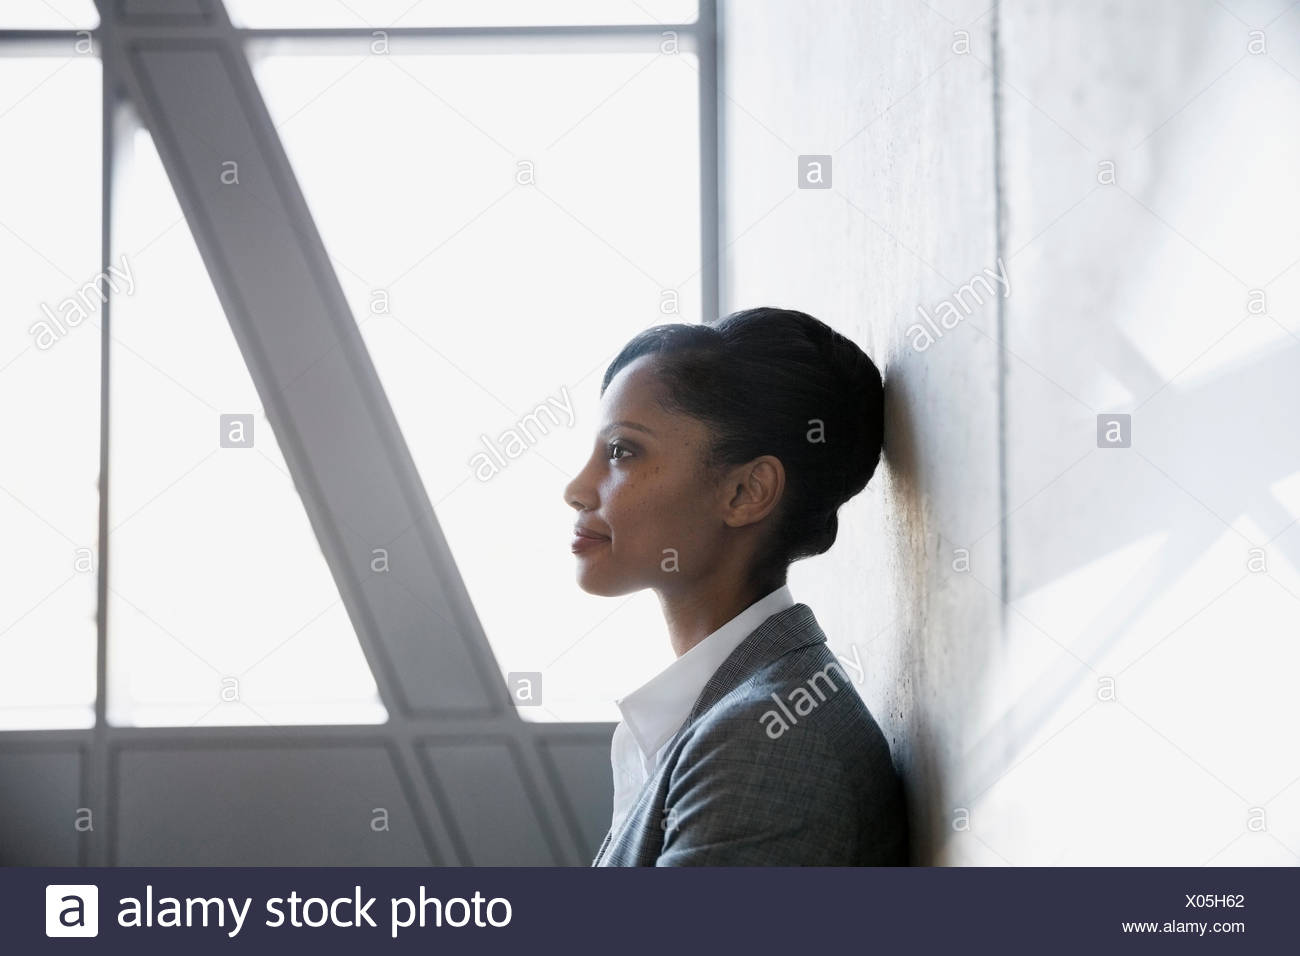 Profile pensive businesswoman with black hair looking away - Stock Image